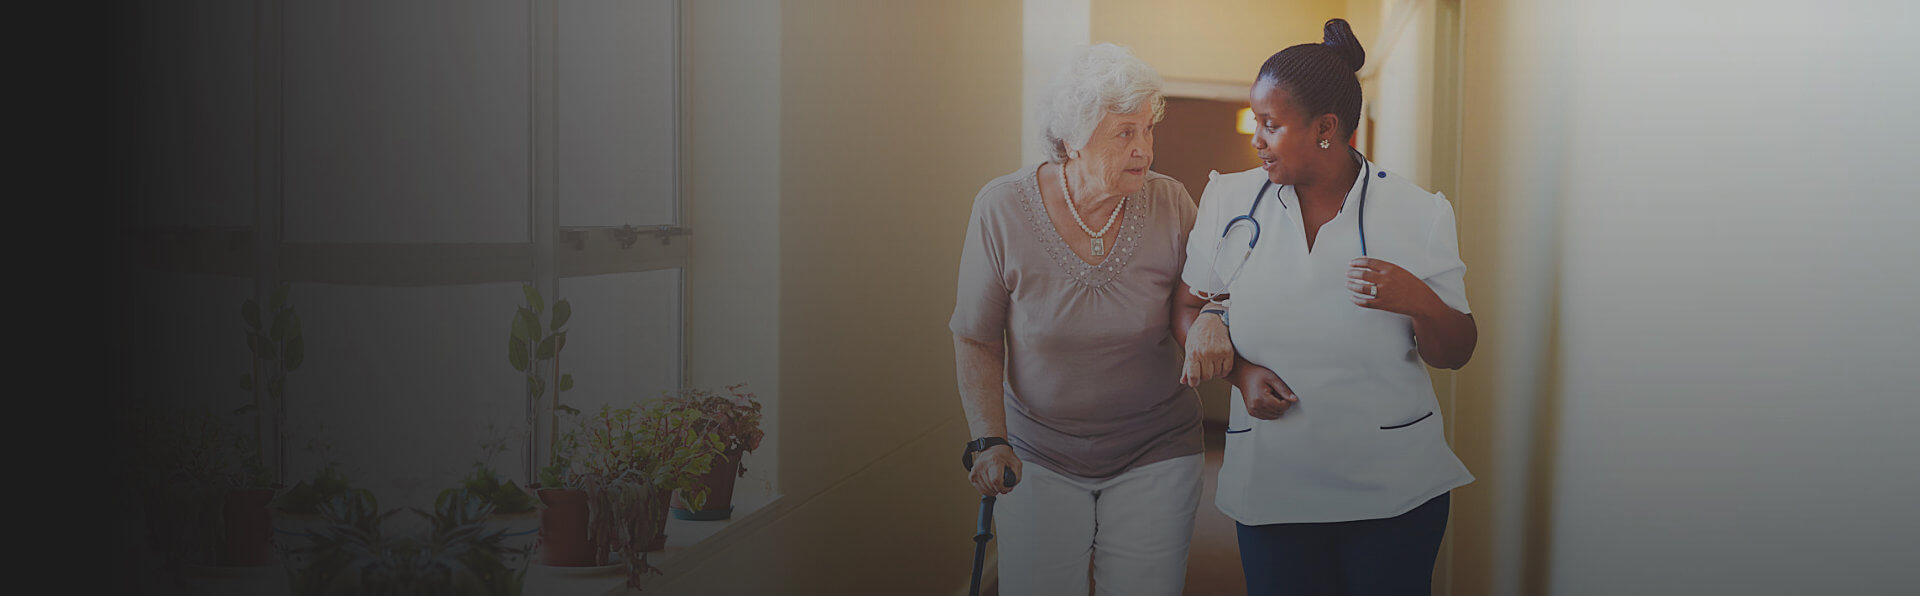 caregiver and old woman enjoying each others company